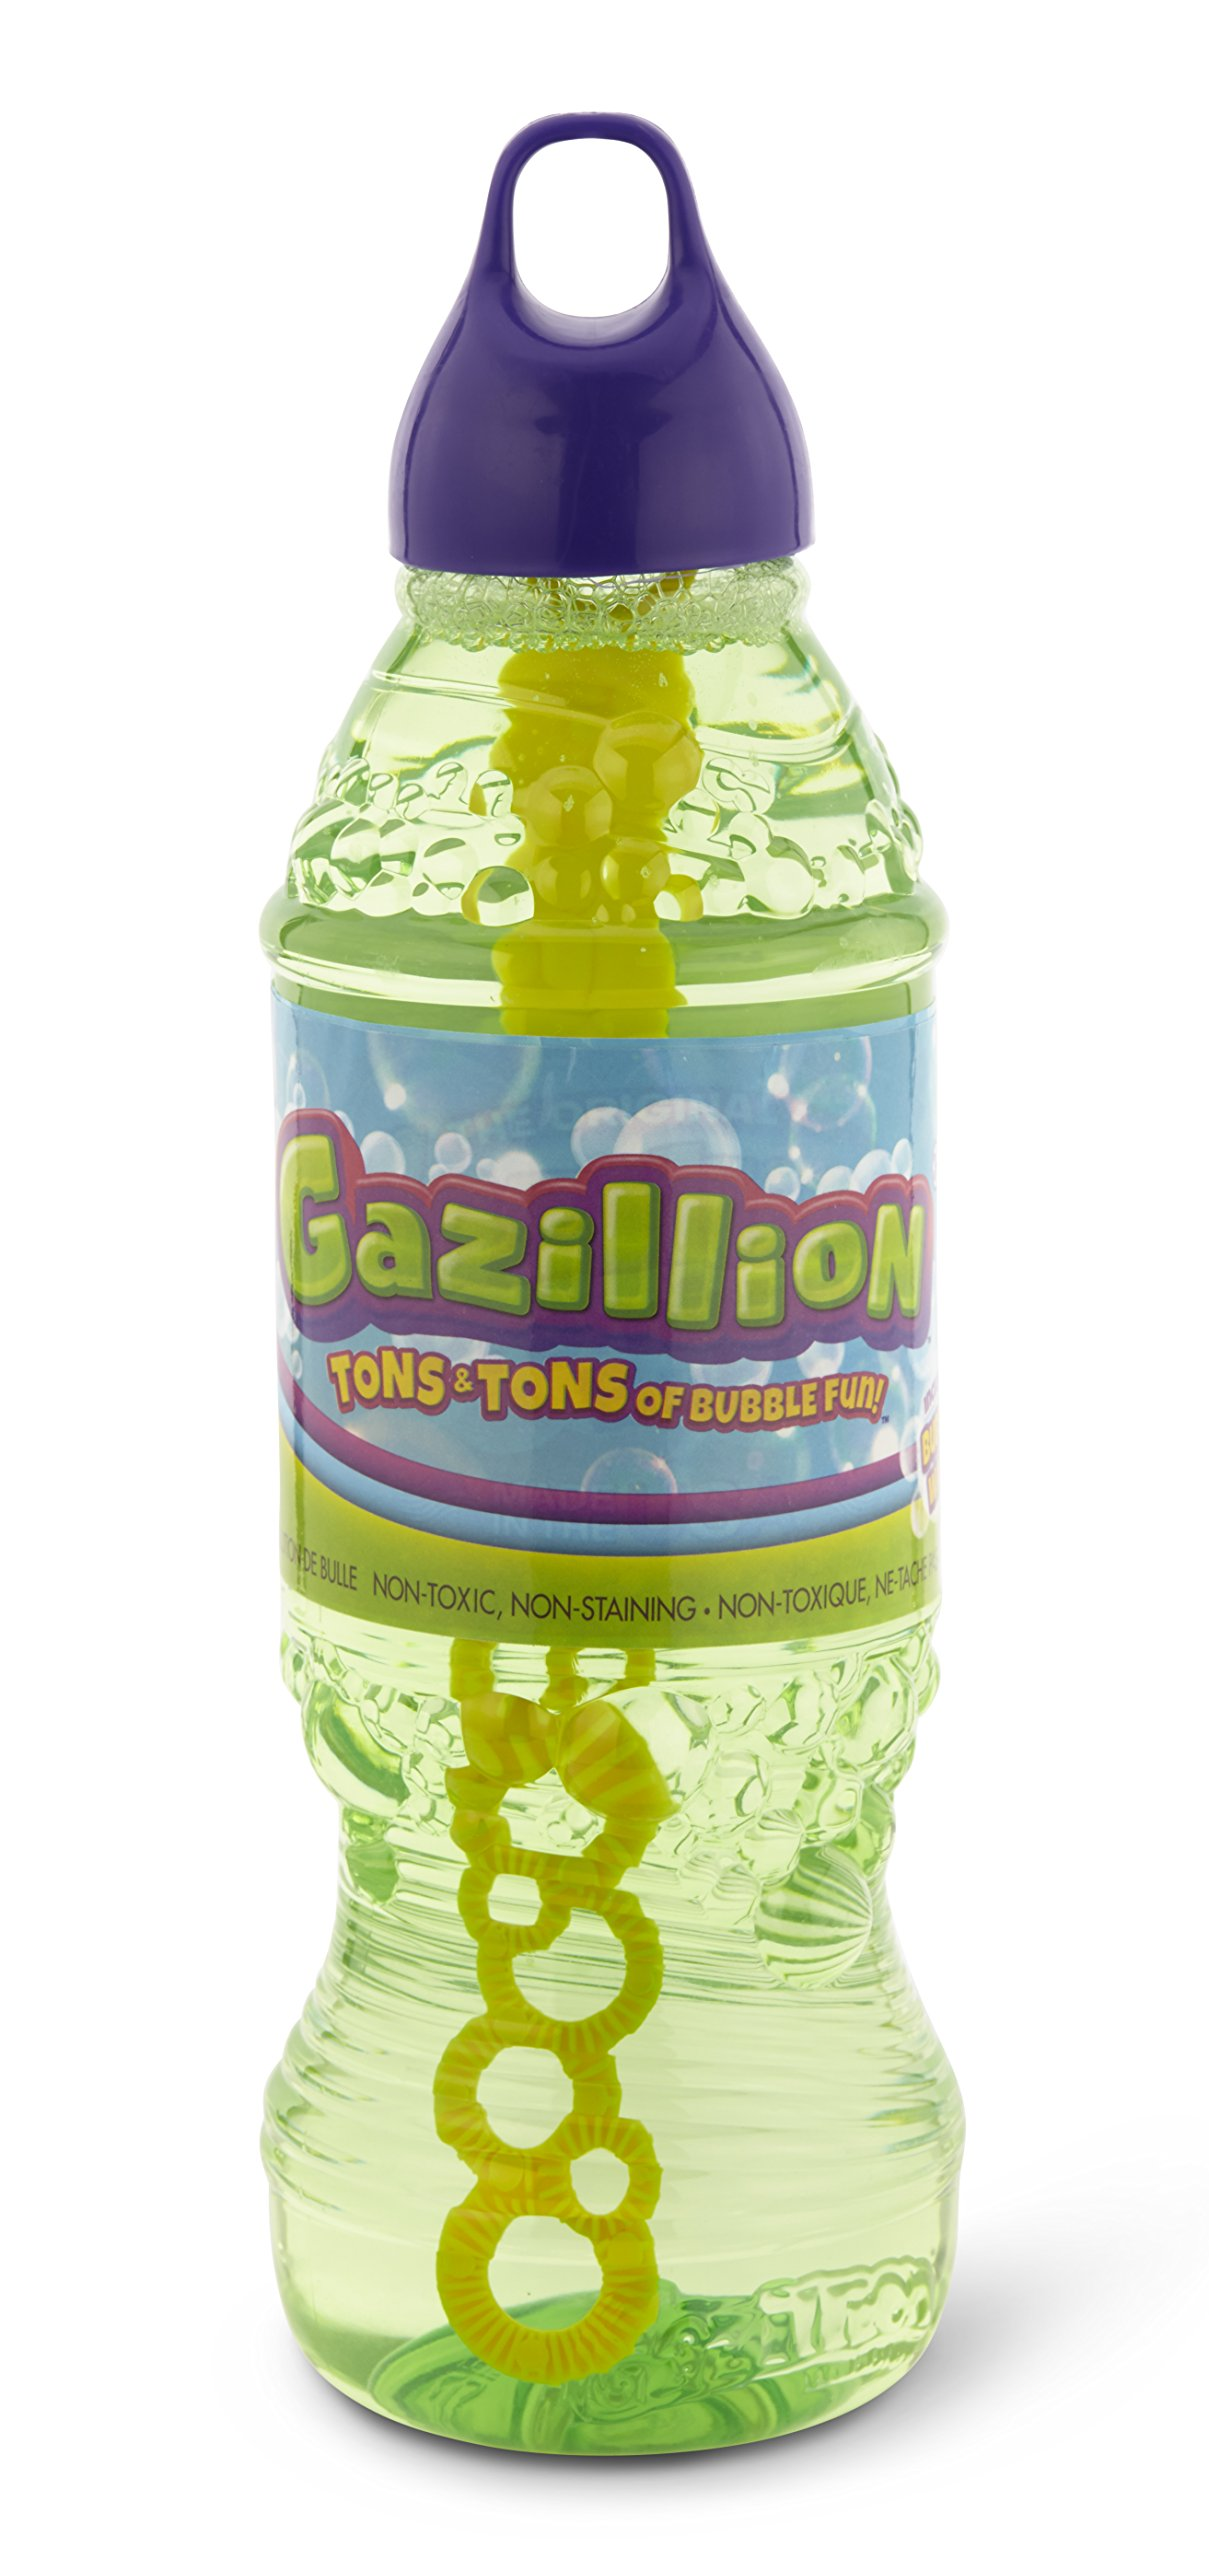 Gazillion Bubbles 1 Liter Solution